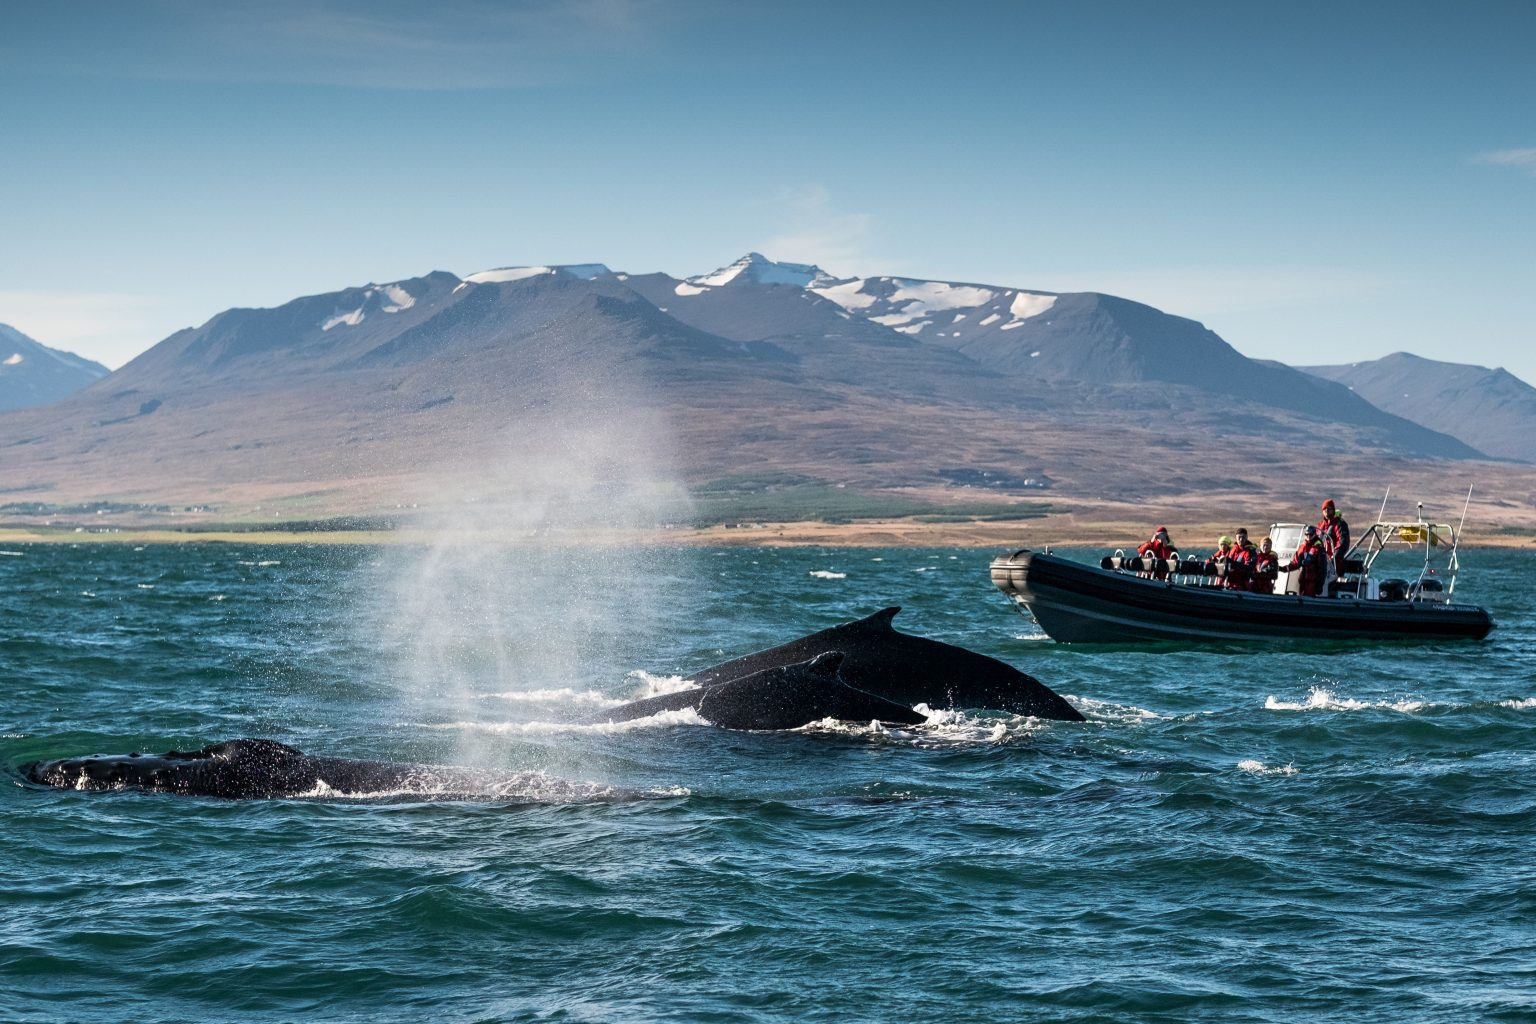 a herd or whales interacting with a boat